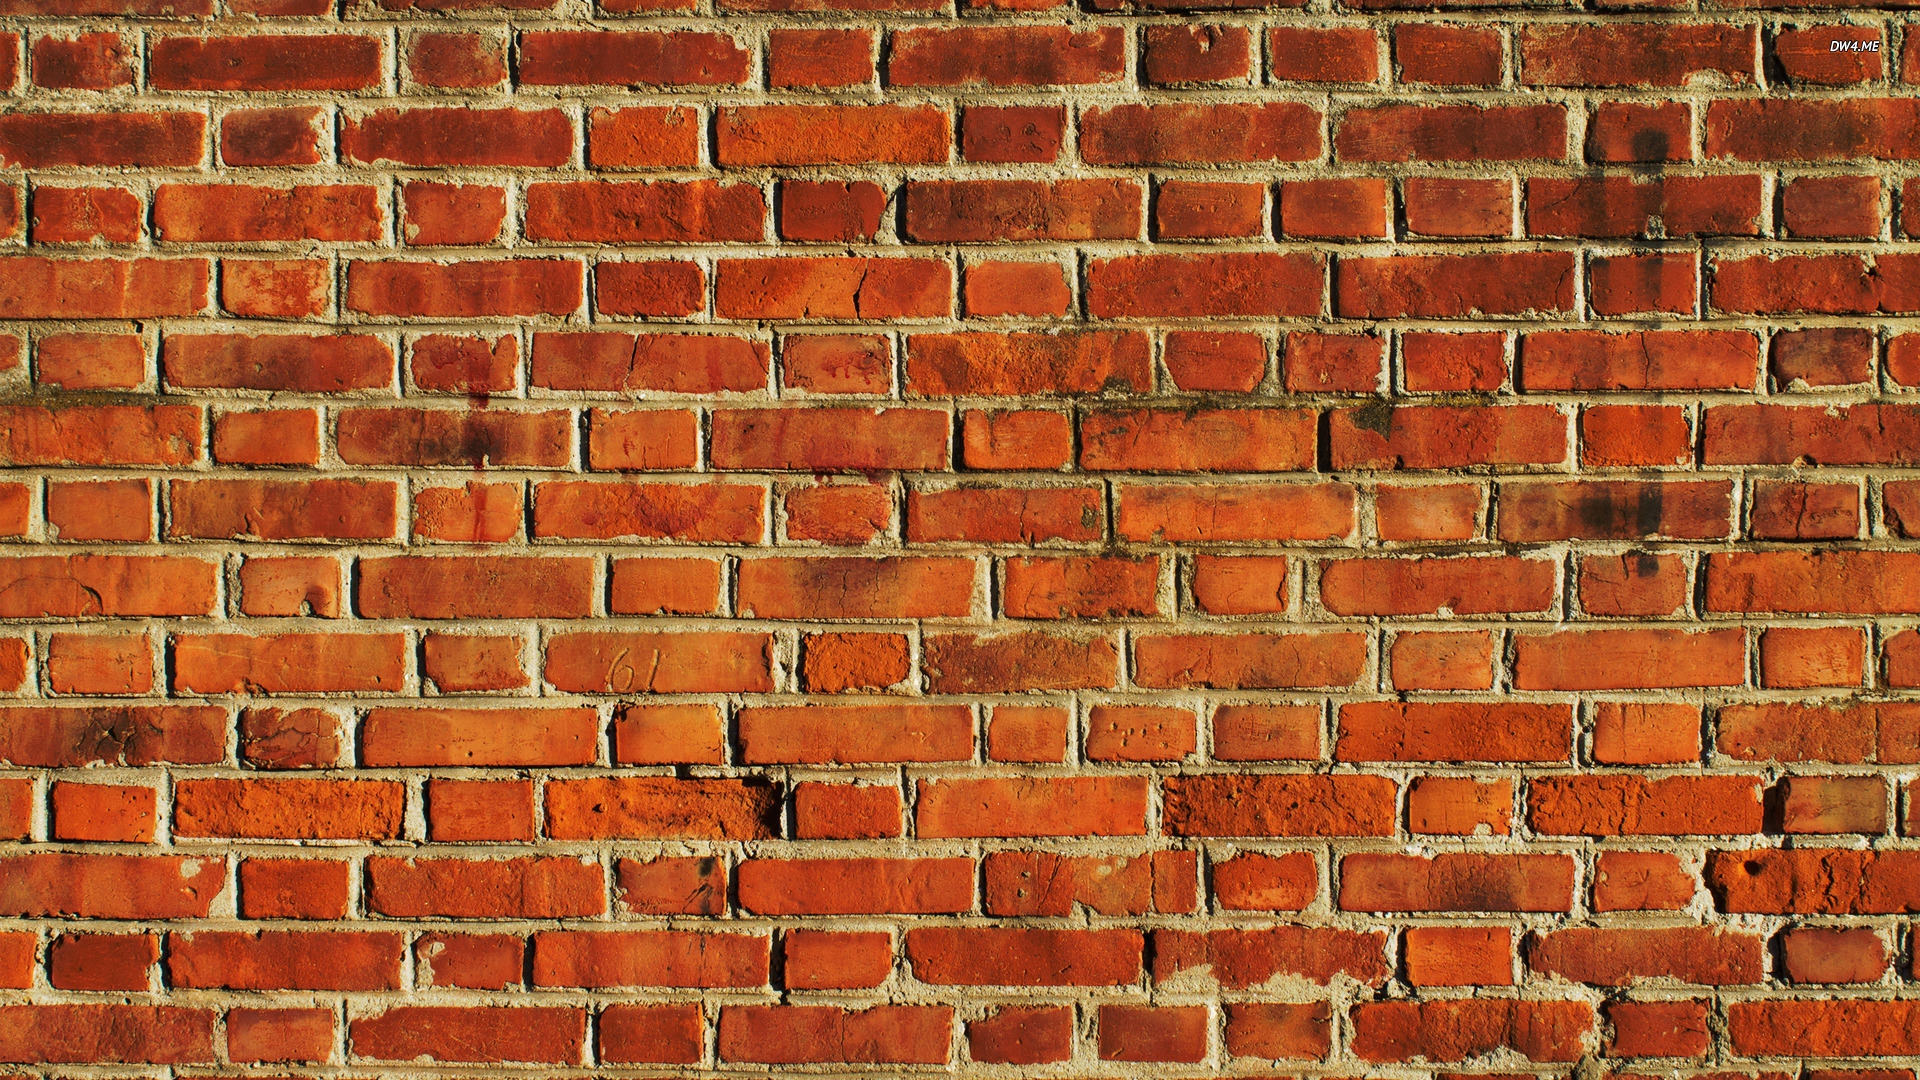 Wall Design Hd Photos : Brick wall backgrounds psd vector eps jpg download